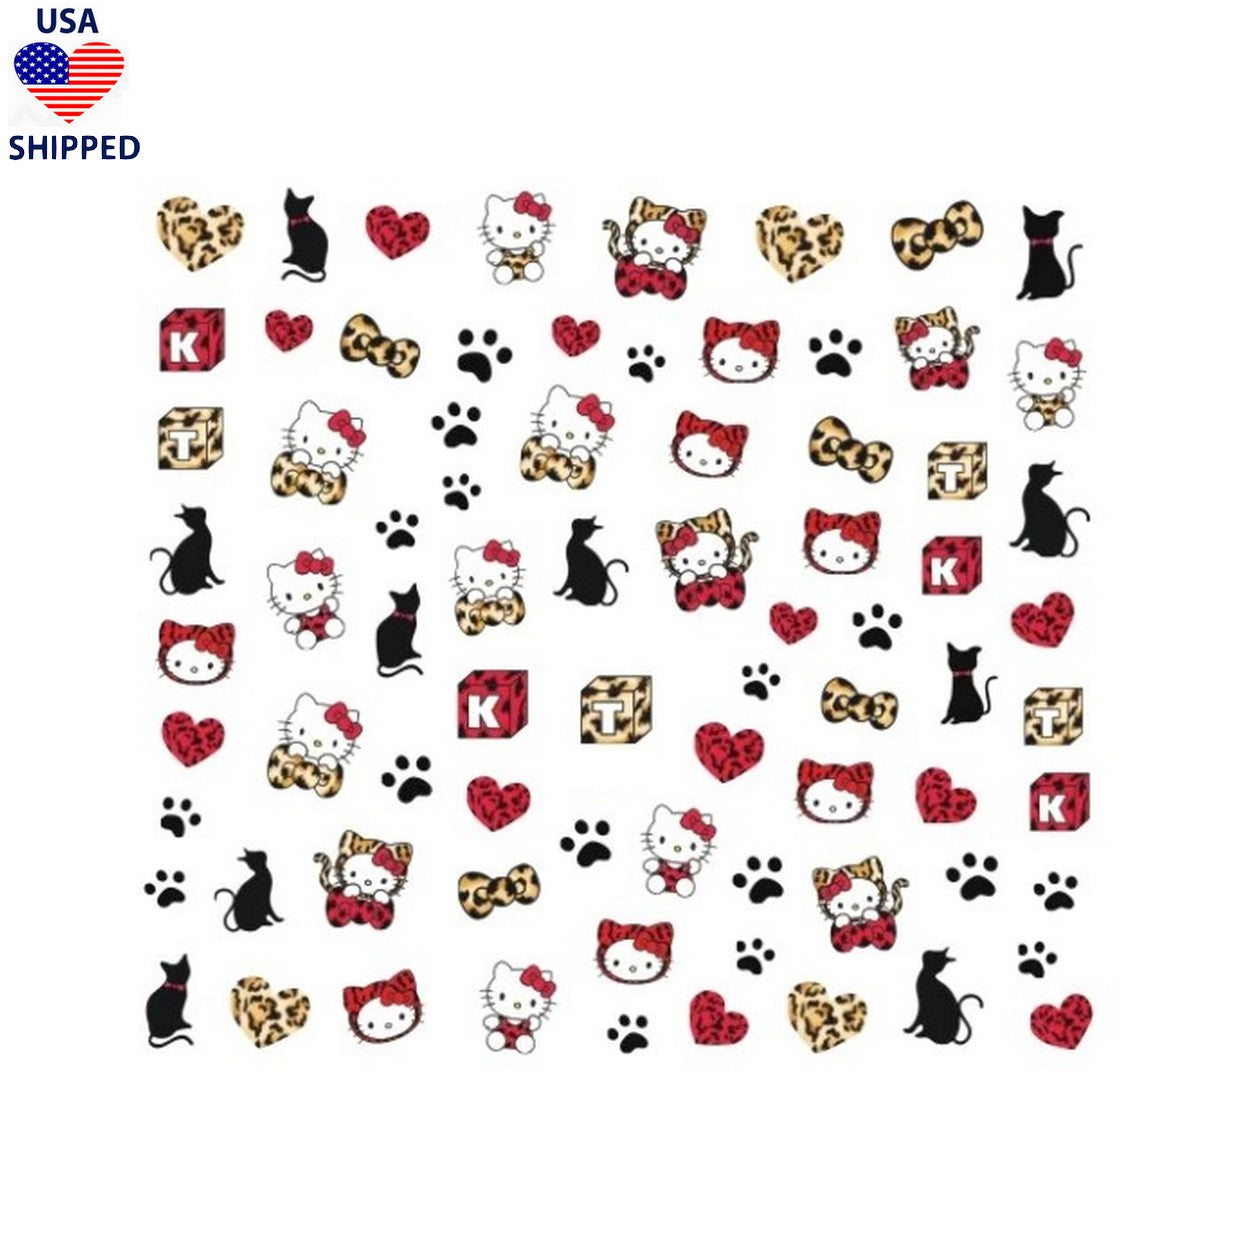 (USA) Kawaii Kitty Leopard Nail Stickers